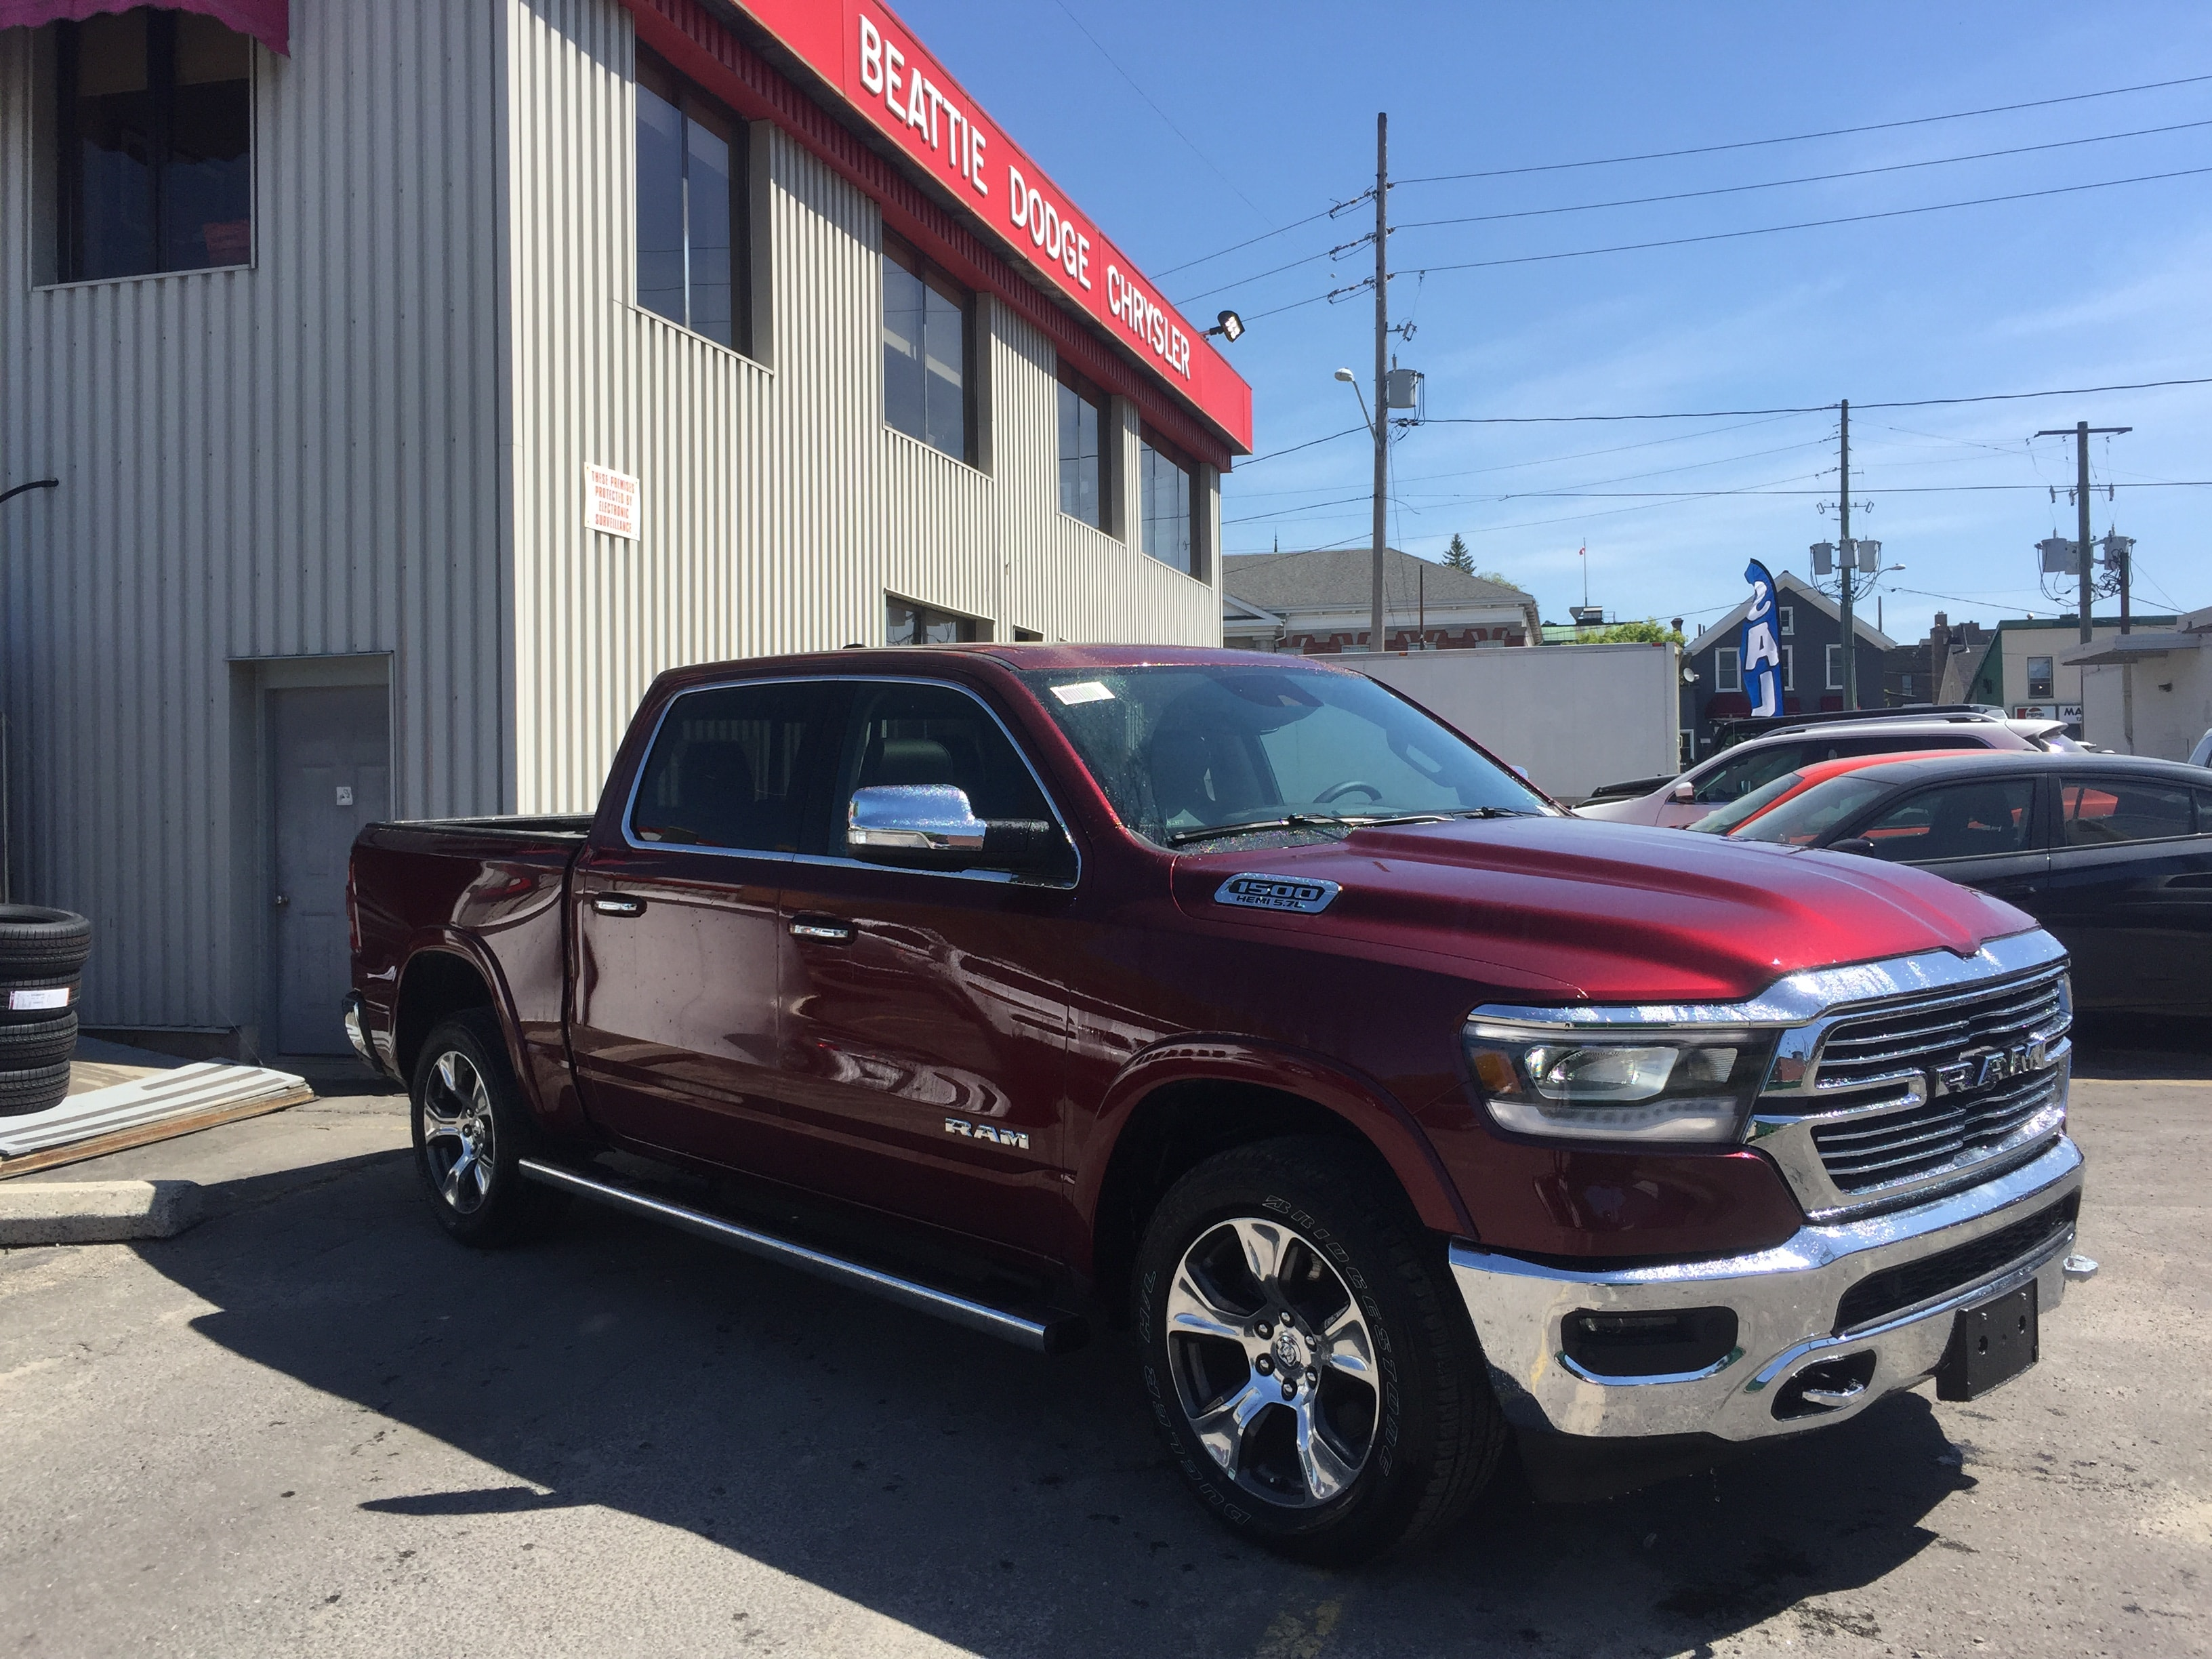 2019 Ram All-New 1500 Laramie 12 INCH TOUCHSCREEN/ DEMO Truck Crew Cab